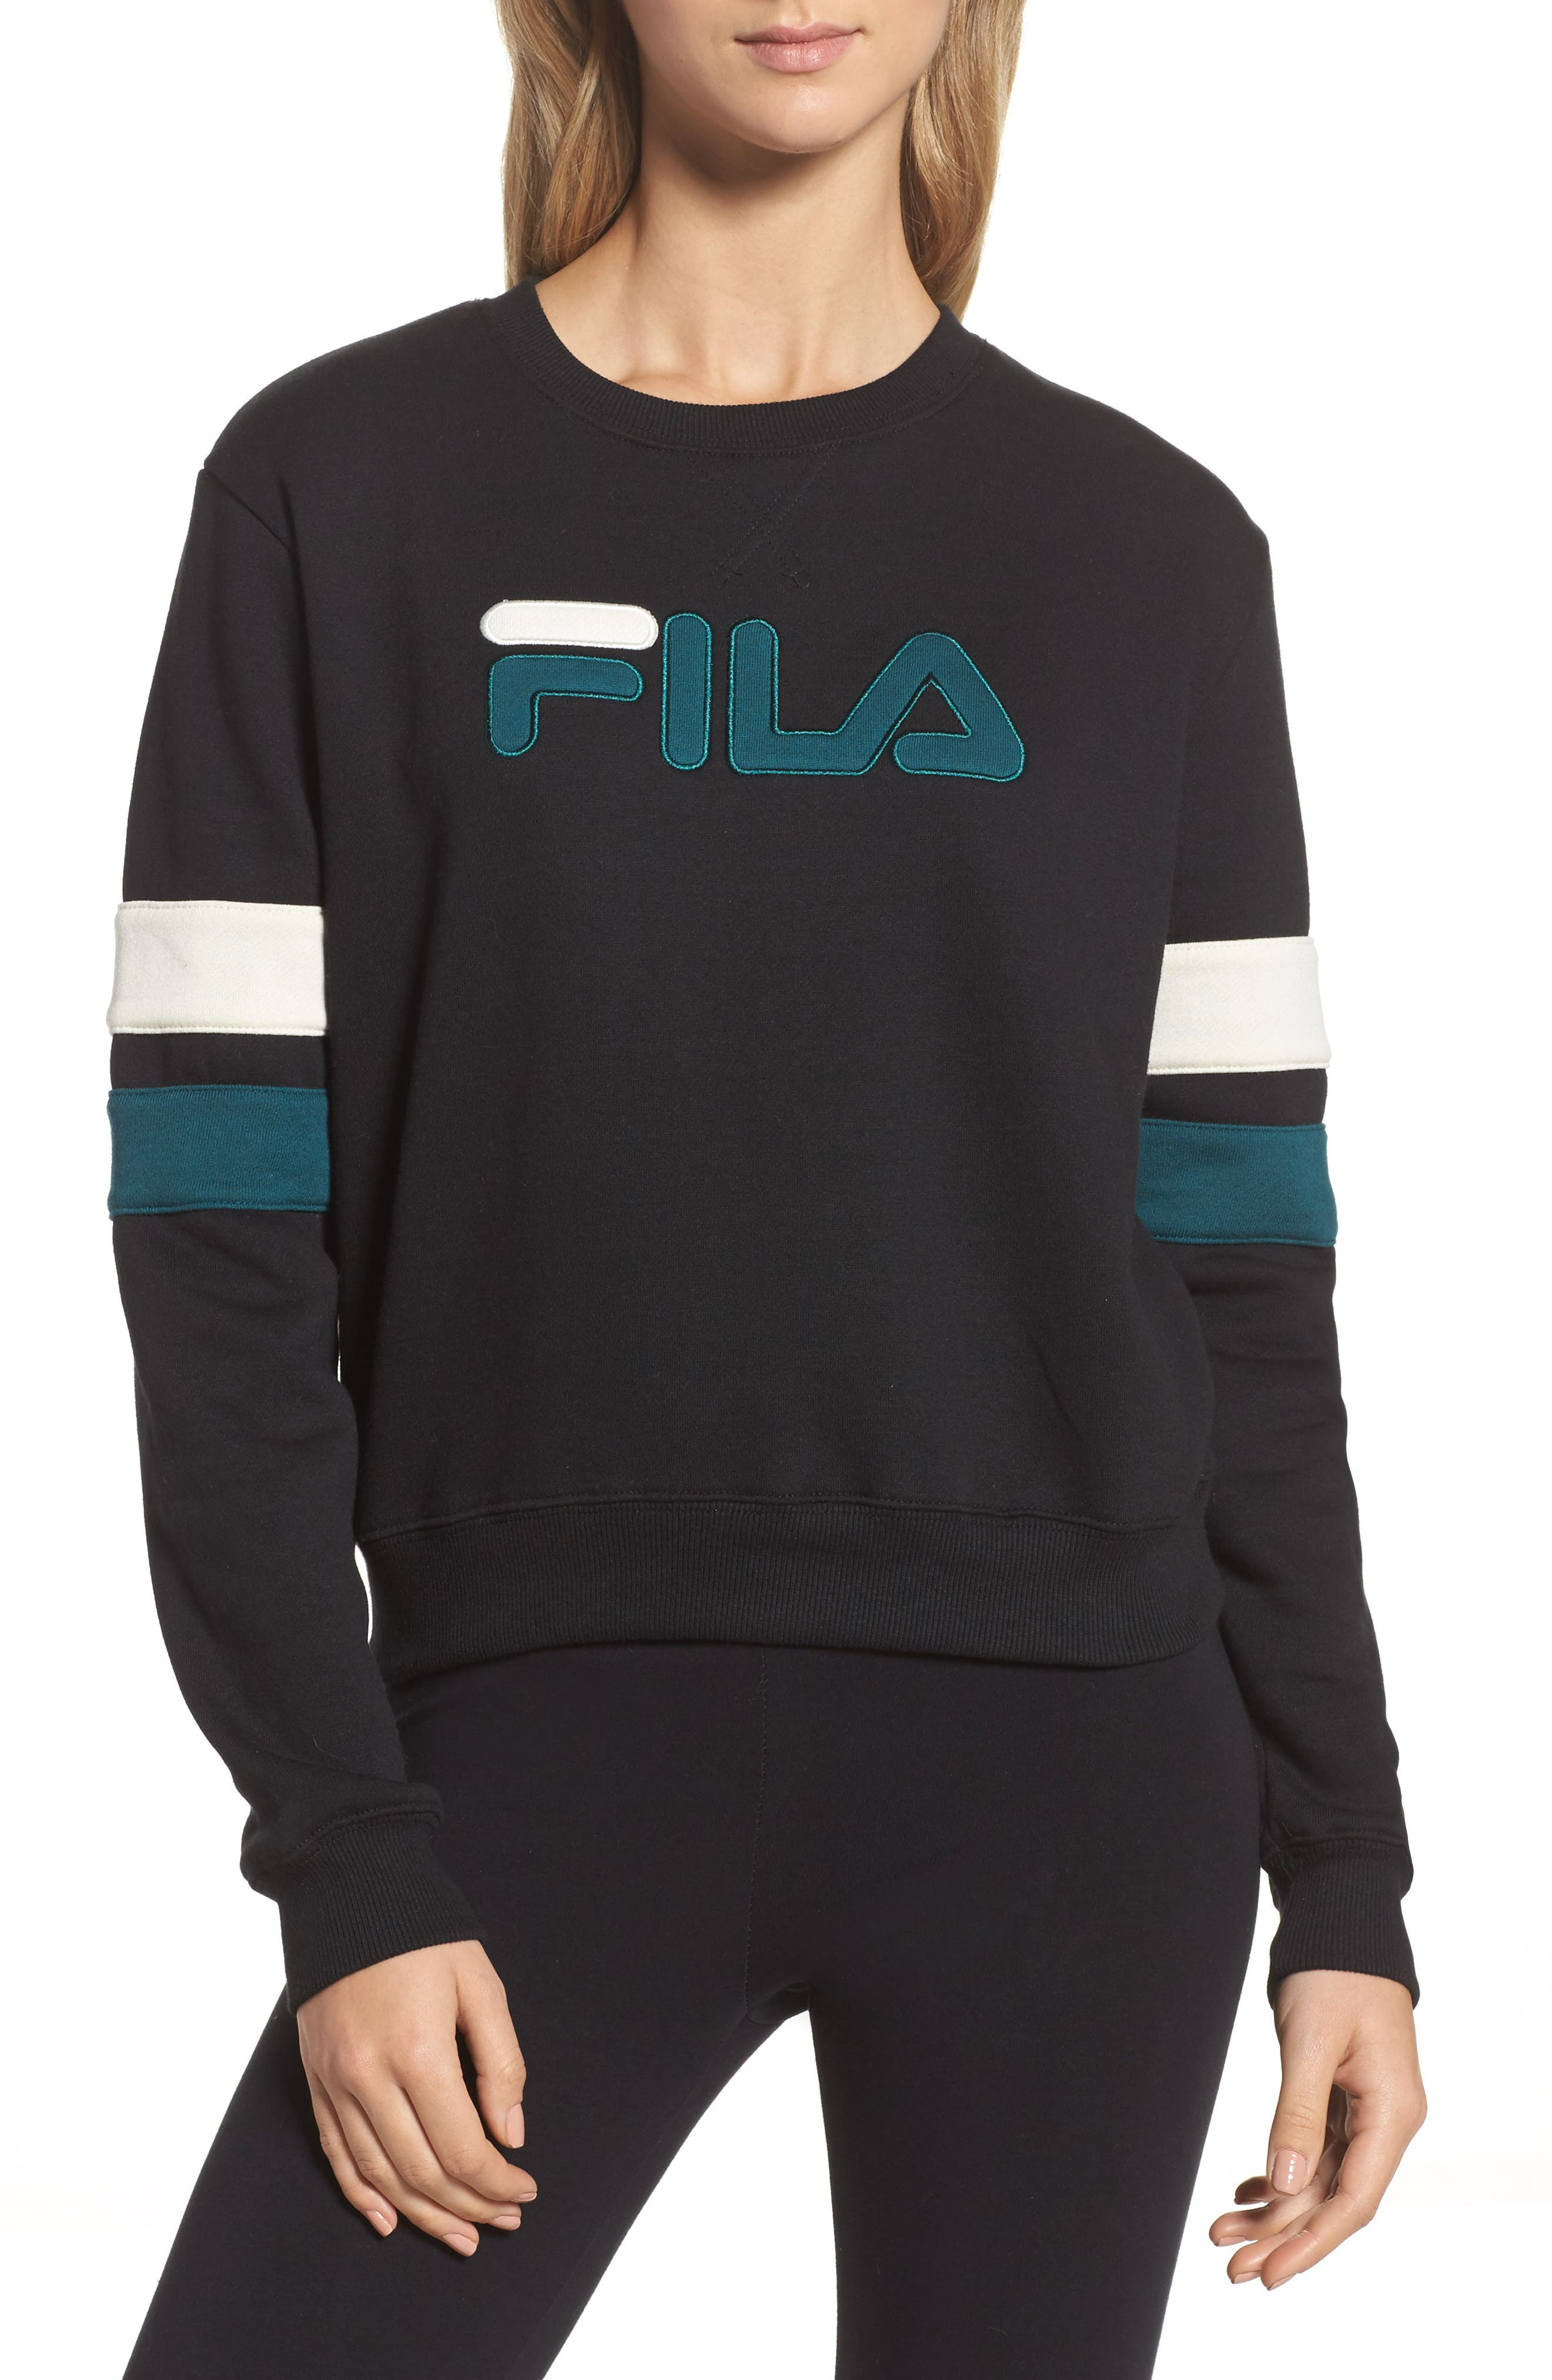 Newton Sweatshirt,                         Main,                         color, Black/ Deep Teal/ Gardenia